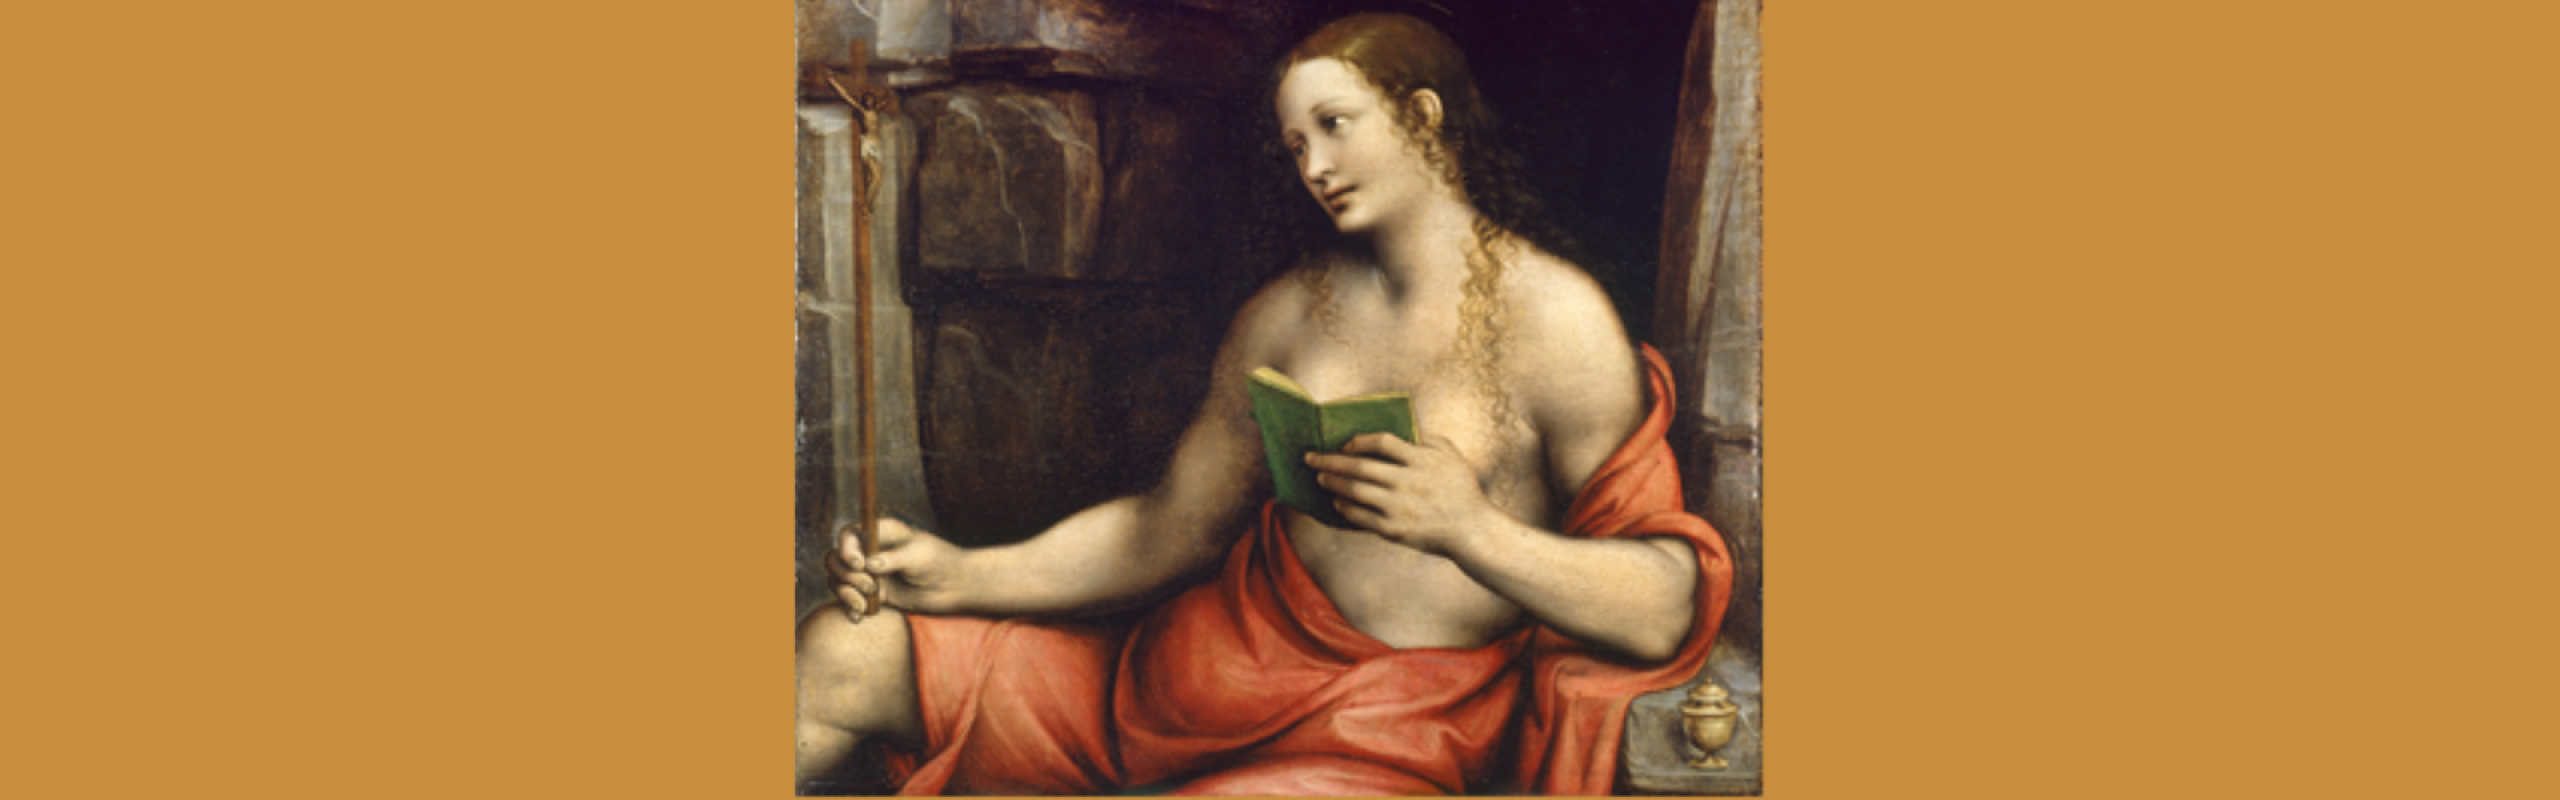 Fallen Marys: The Magdalene and Other Wayward Saints in Renaissance Art